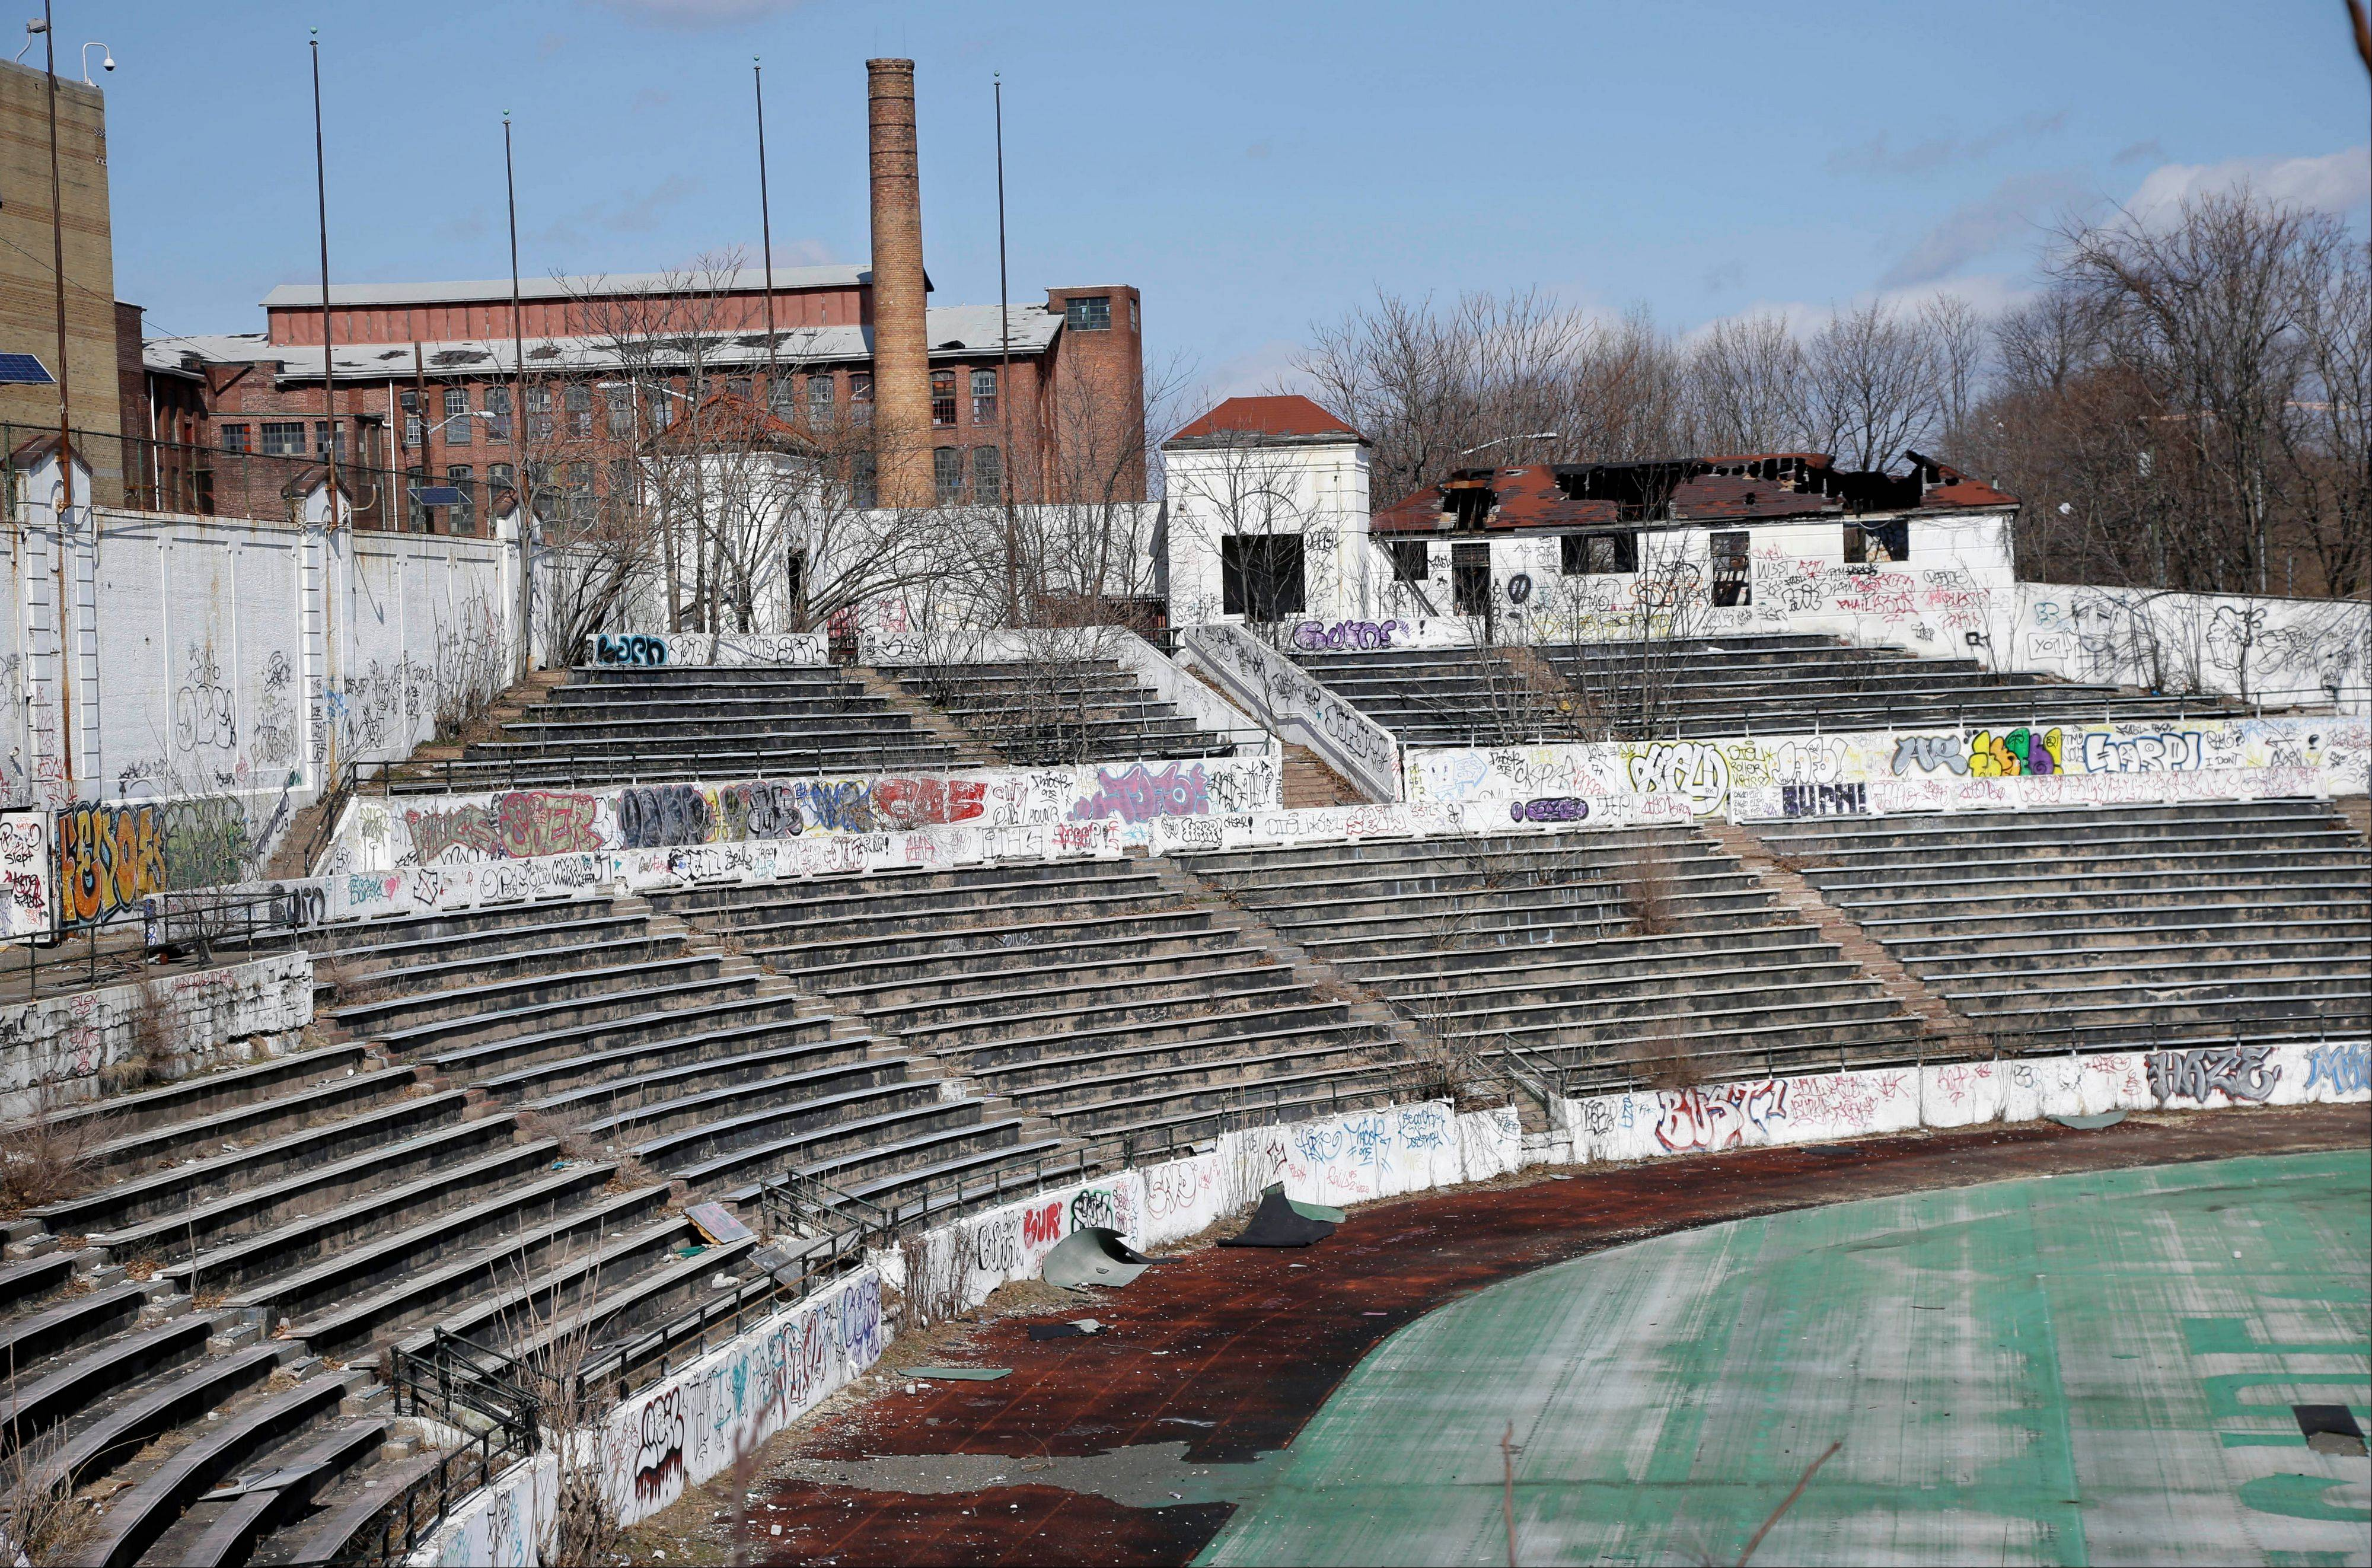 Graffiti covers the stands in Hinchliffe Stadium in Paterson, N.J. The once-grand Art Deco stadium earned designation in March as a national landmark.